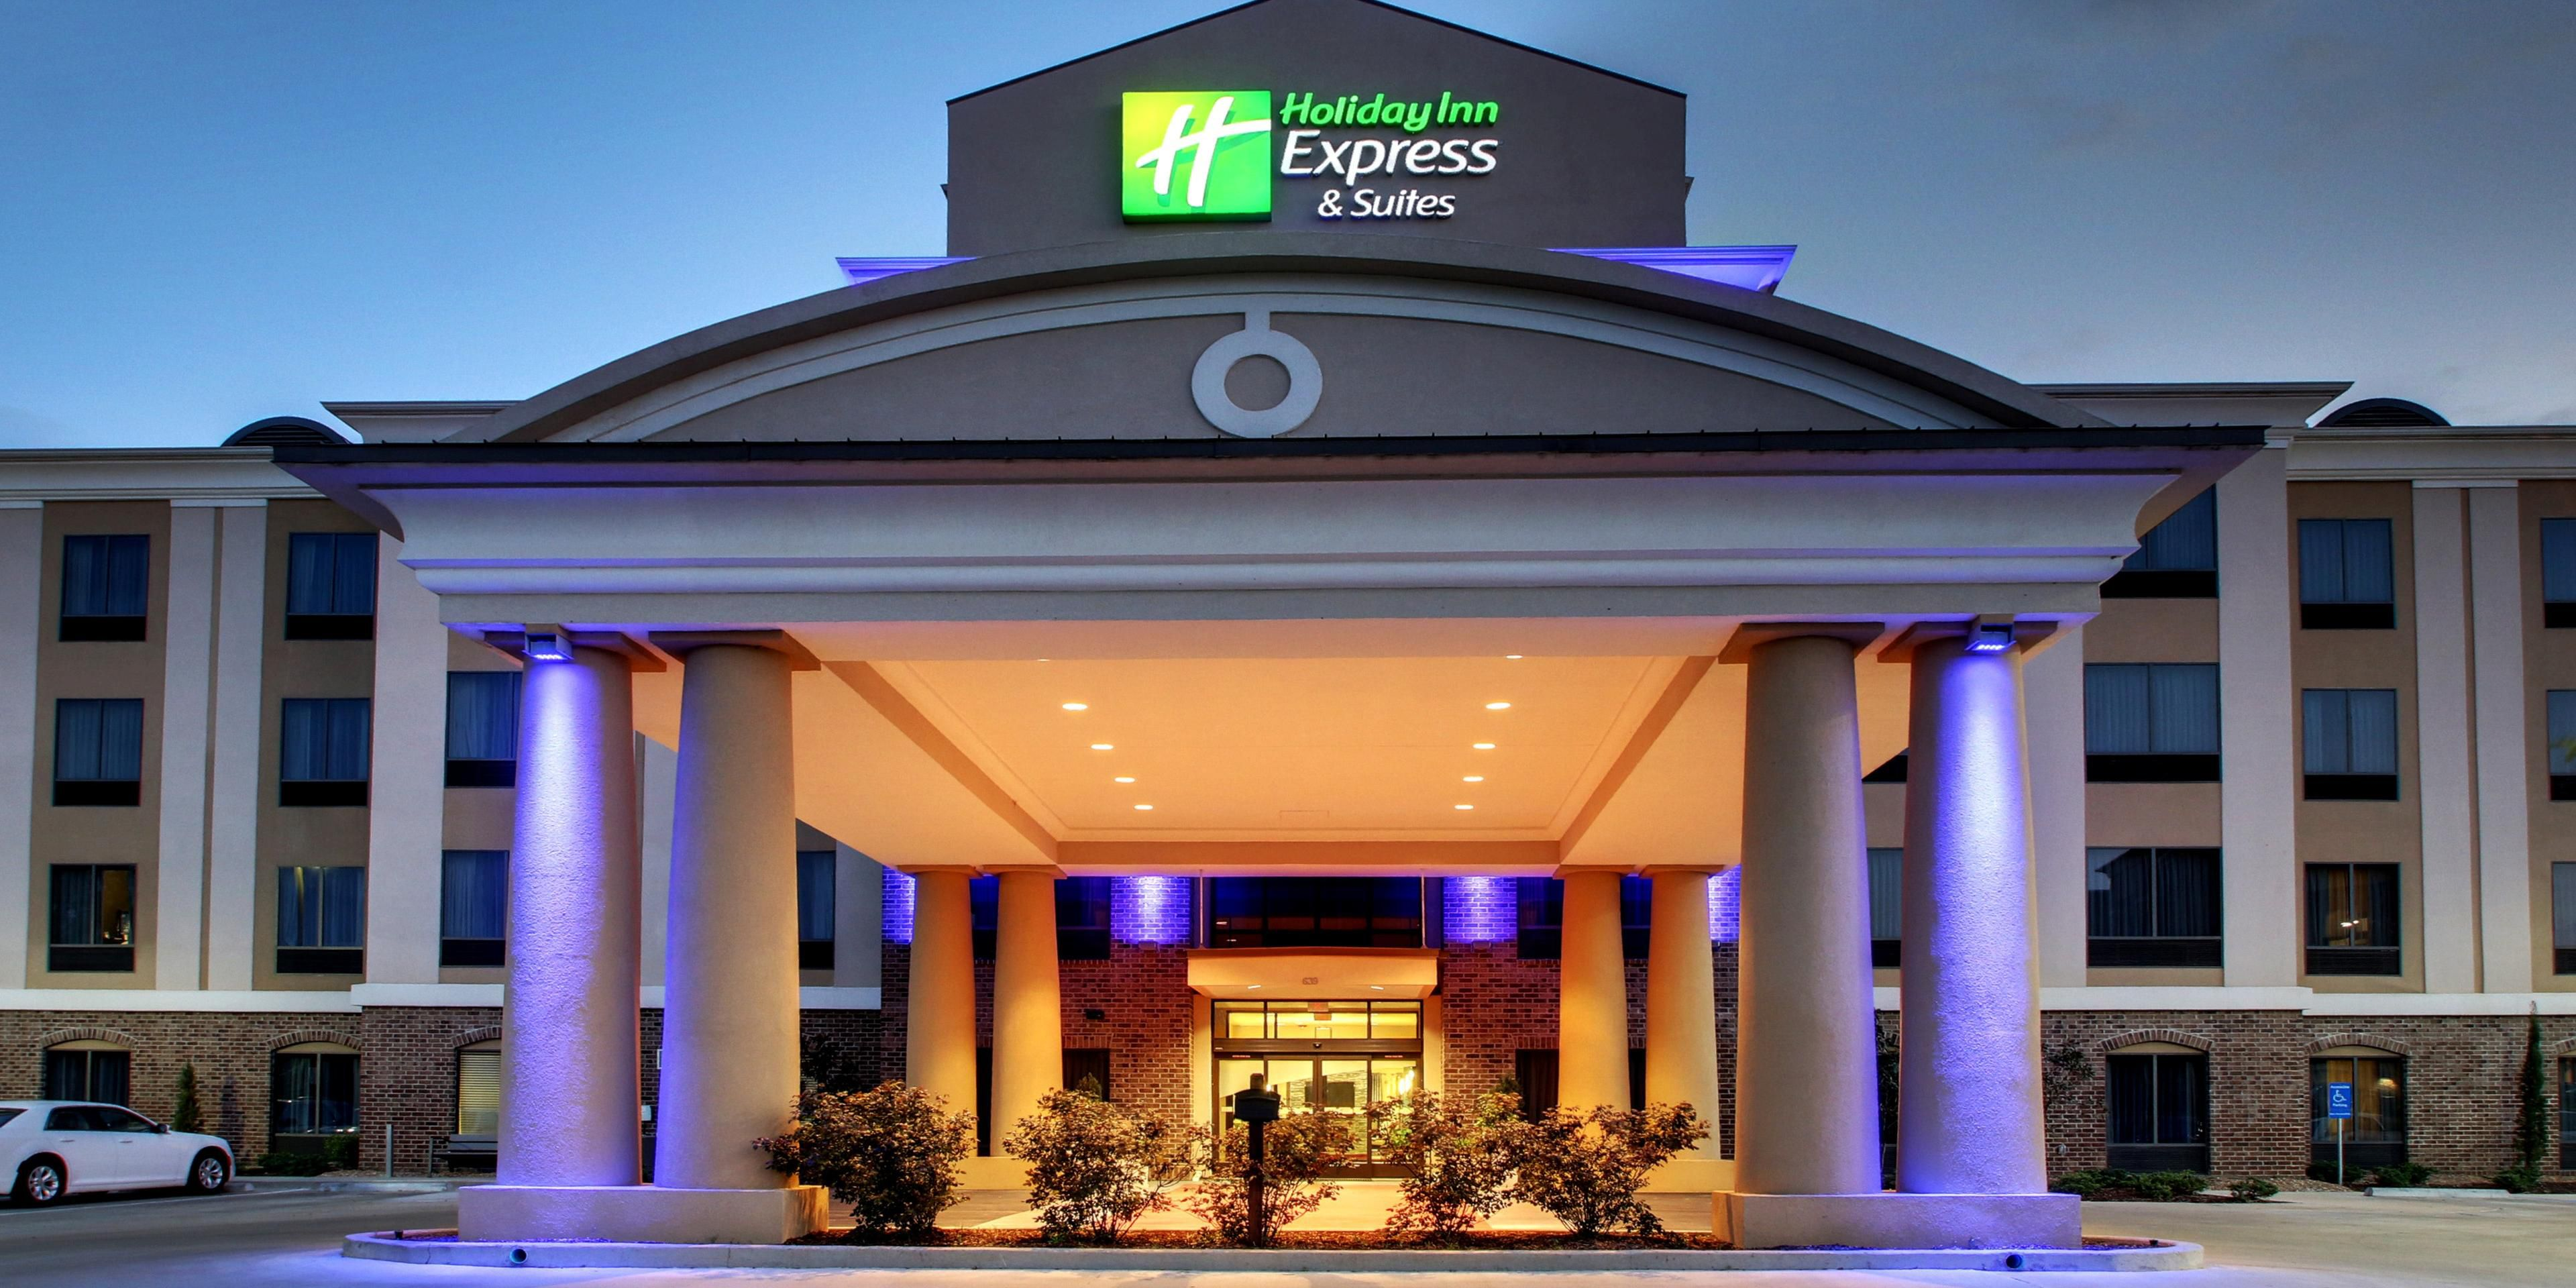 hotel in natchez south holiday inn express suites rh ihg com